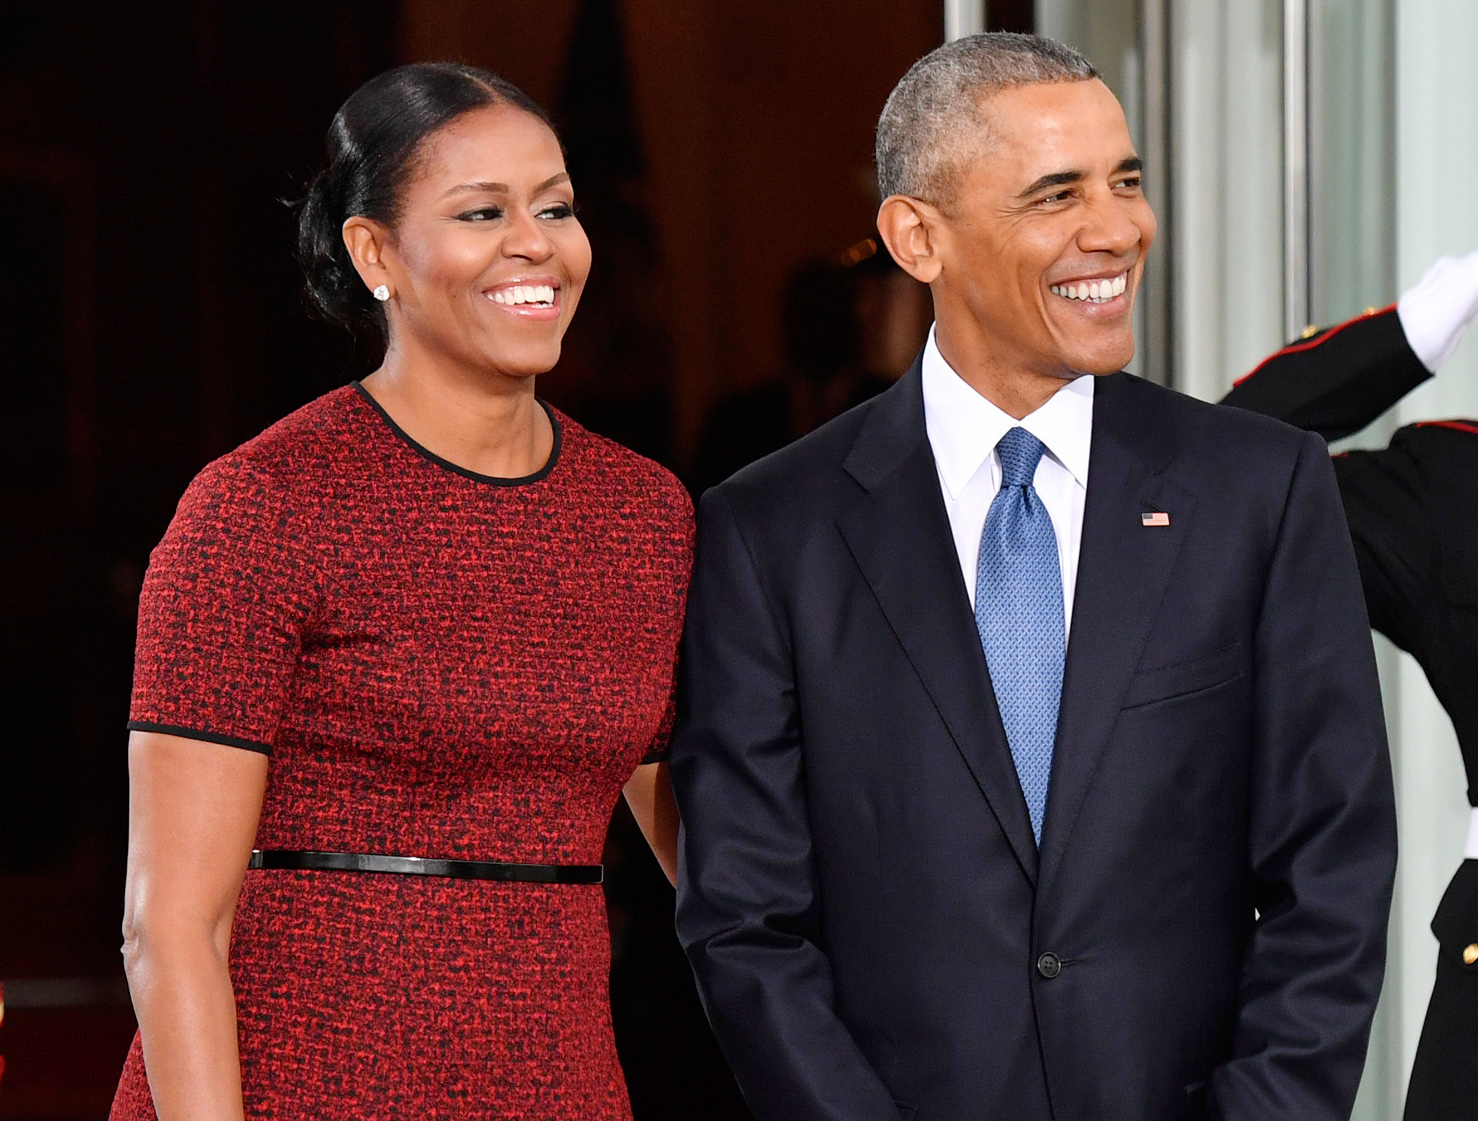 Barack and Michelle Obama Are Returning to Inspire in a Major Way This Fall